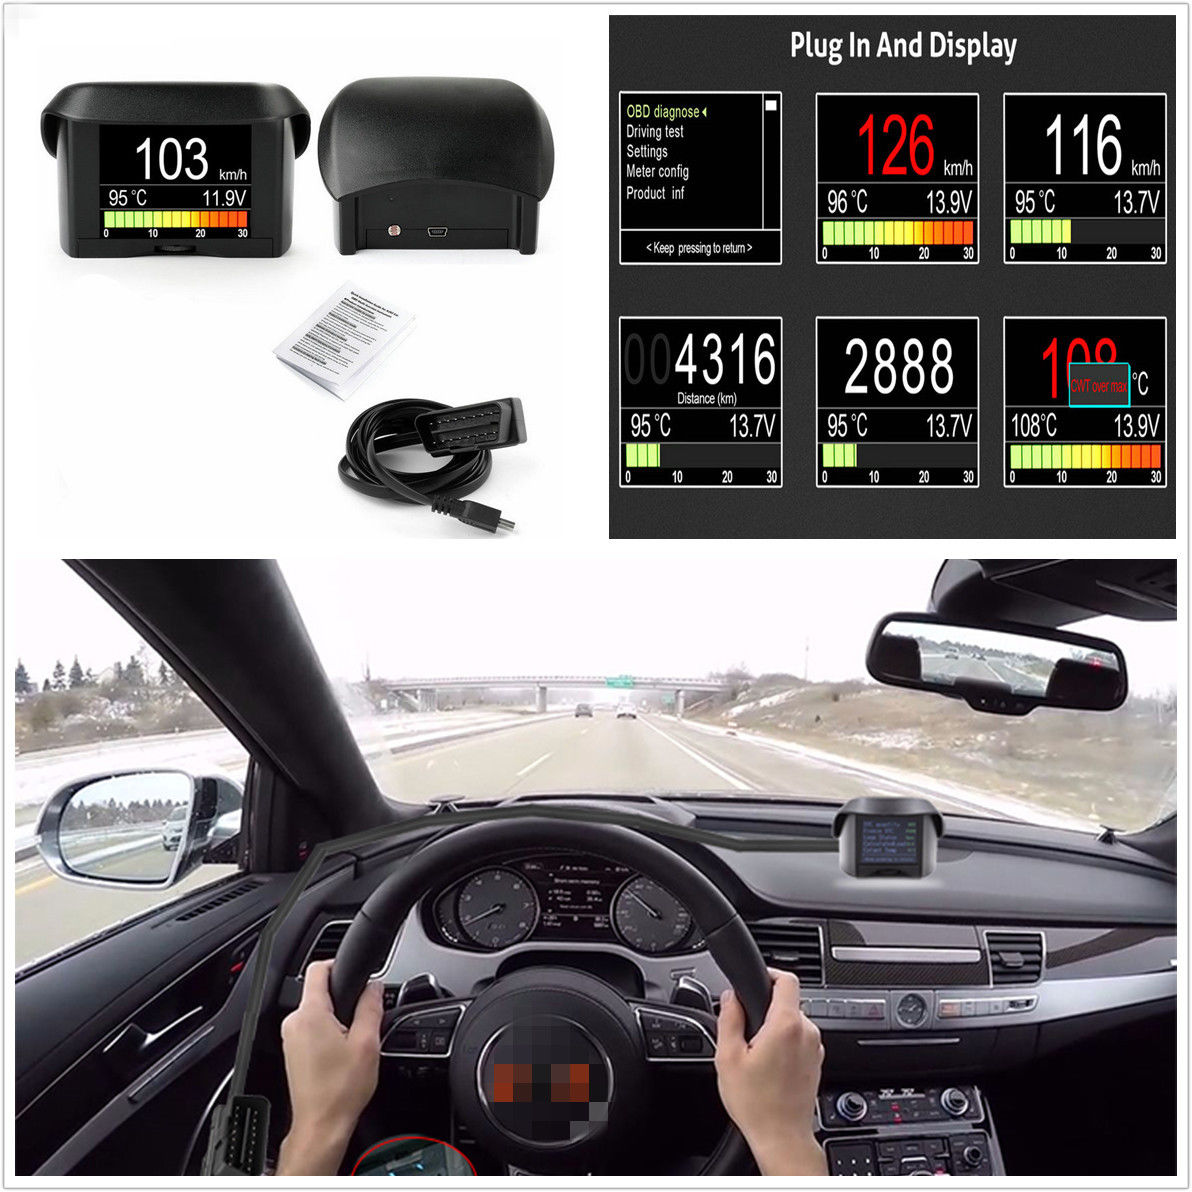 how to use trip meter in car